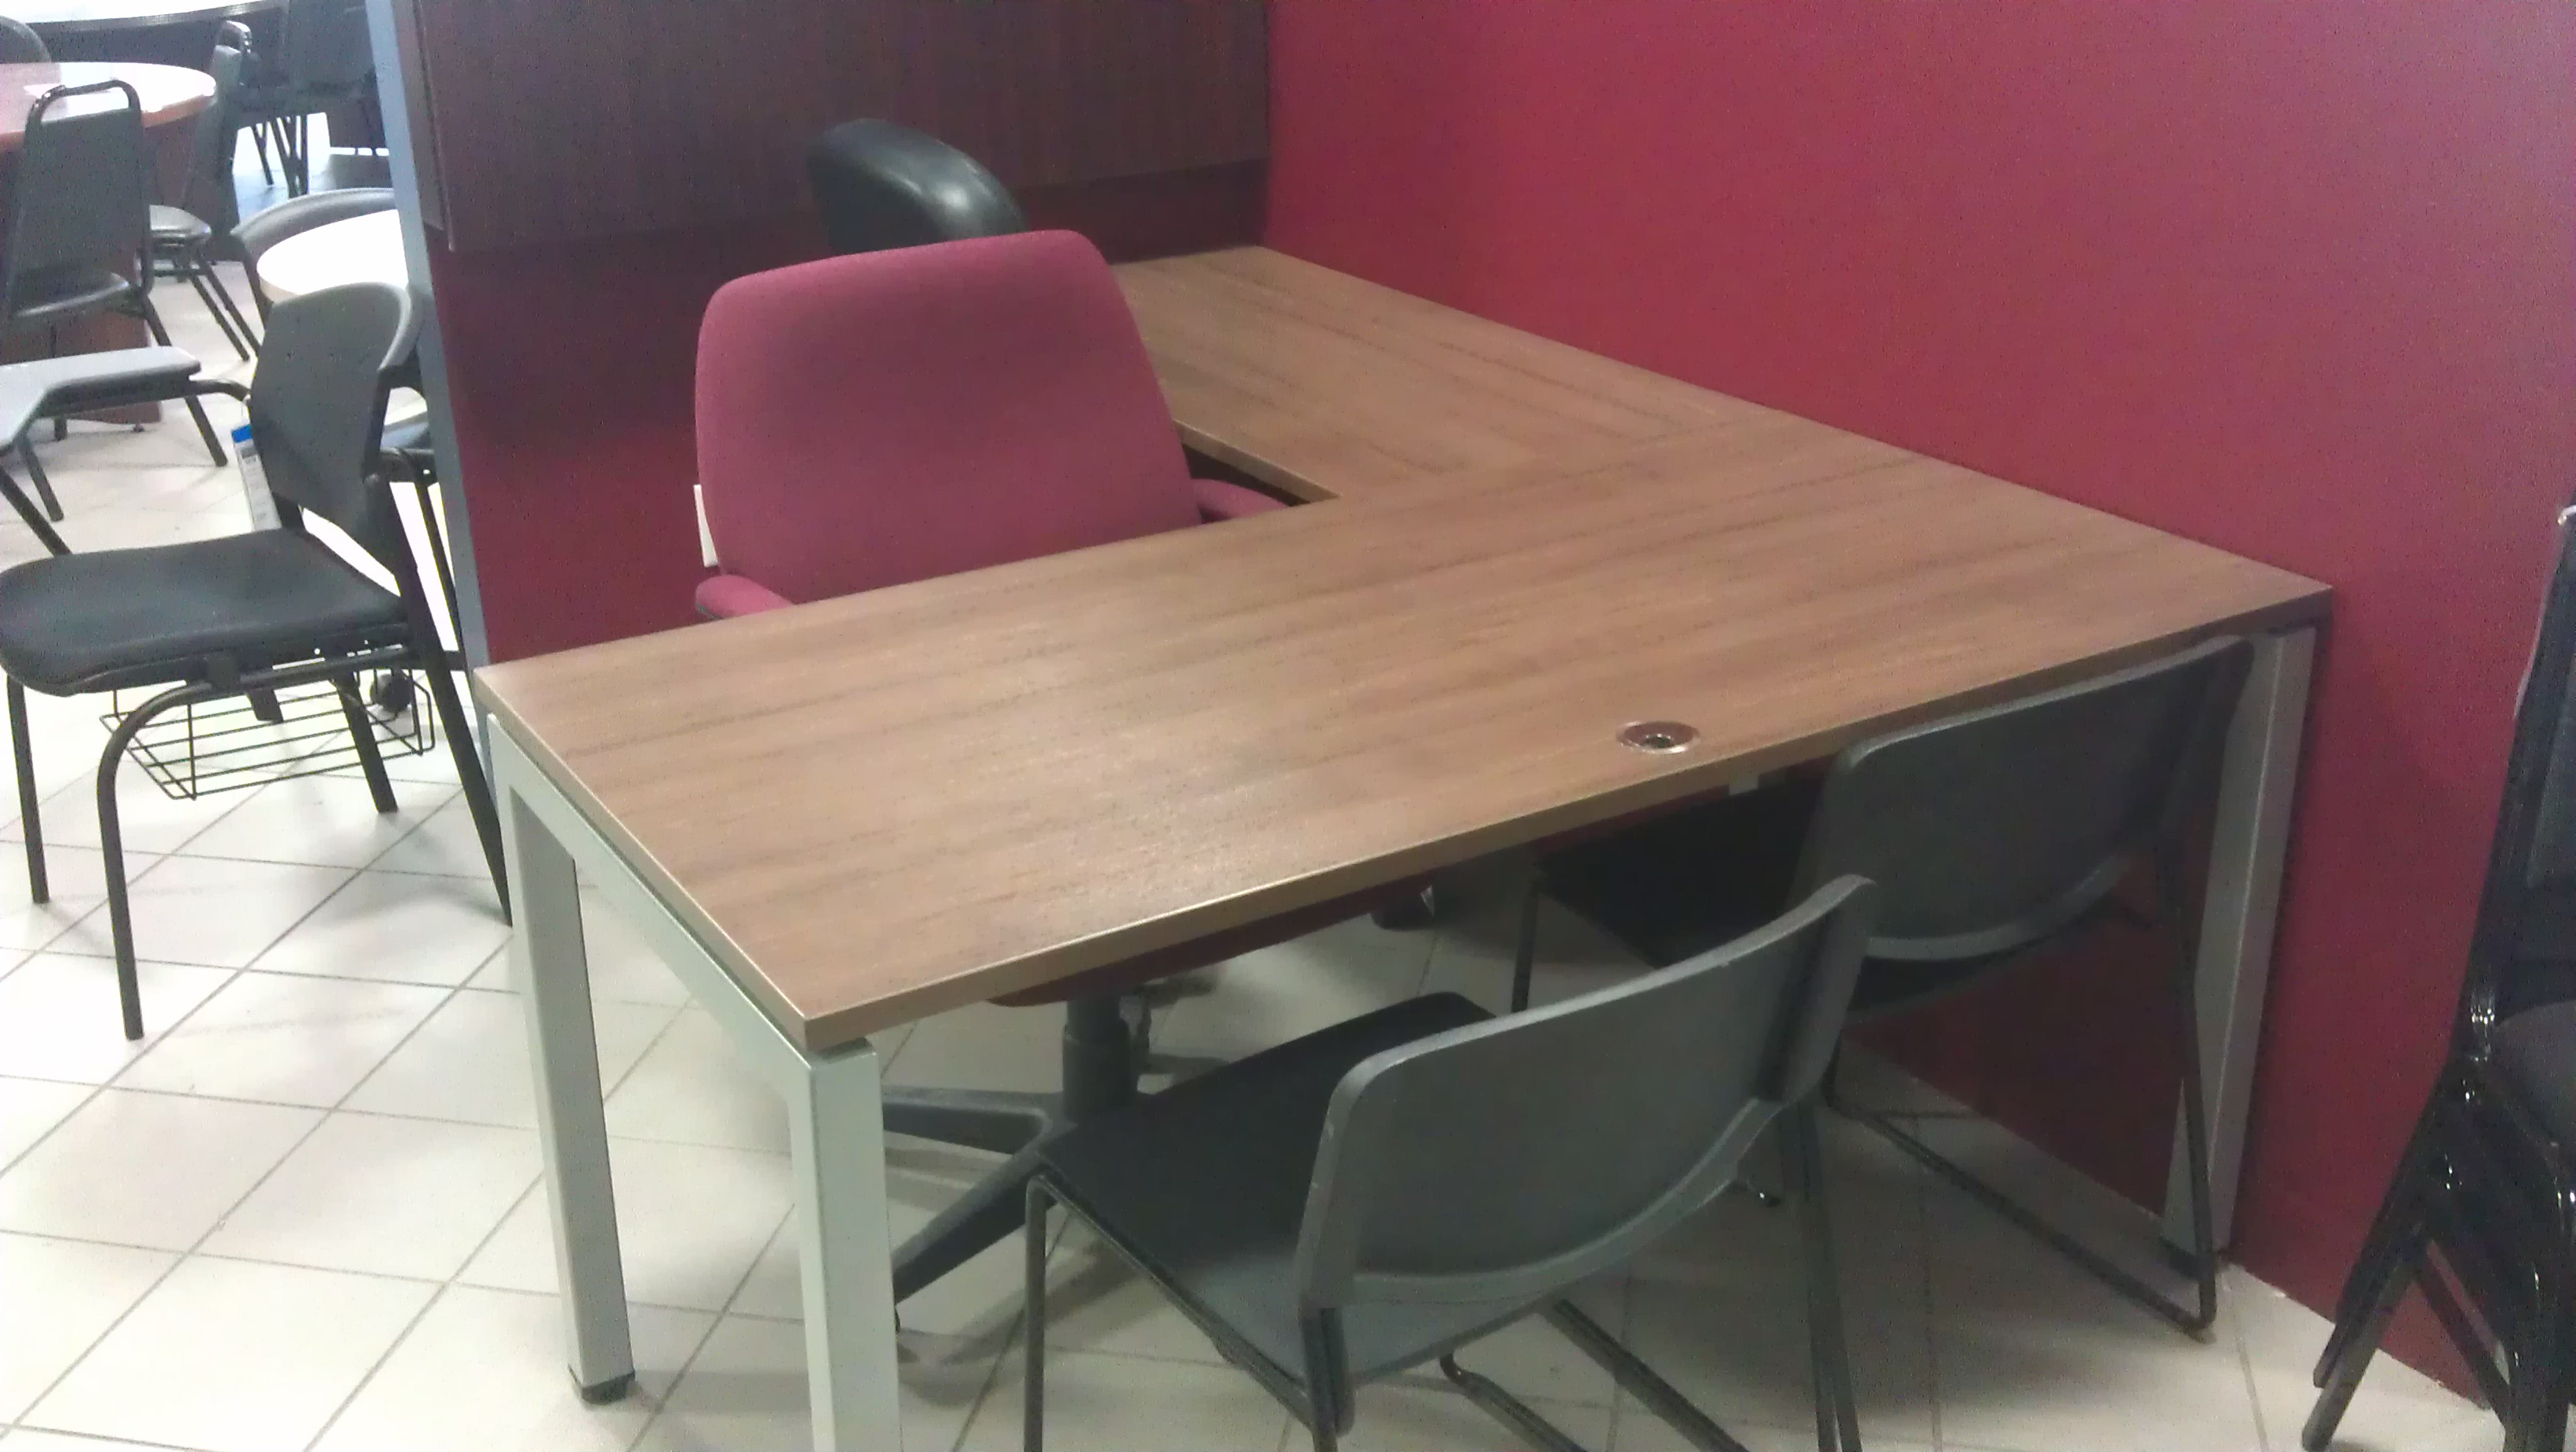 Used Desks Loveland Colorado New Used Office Furniture